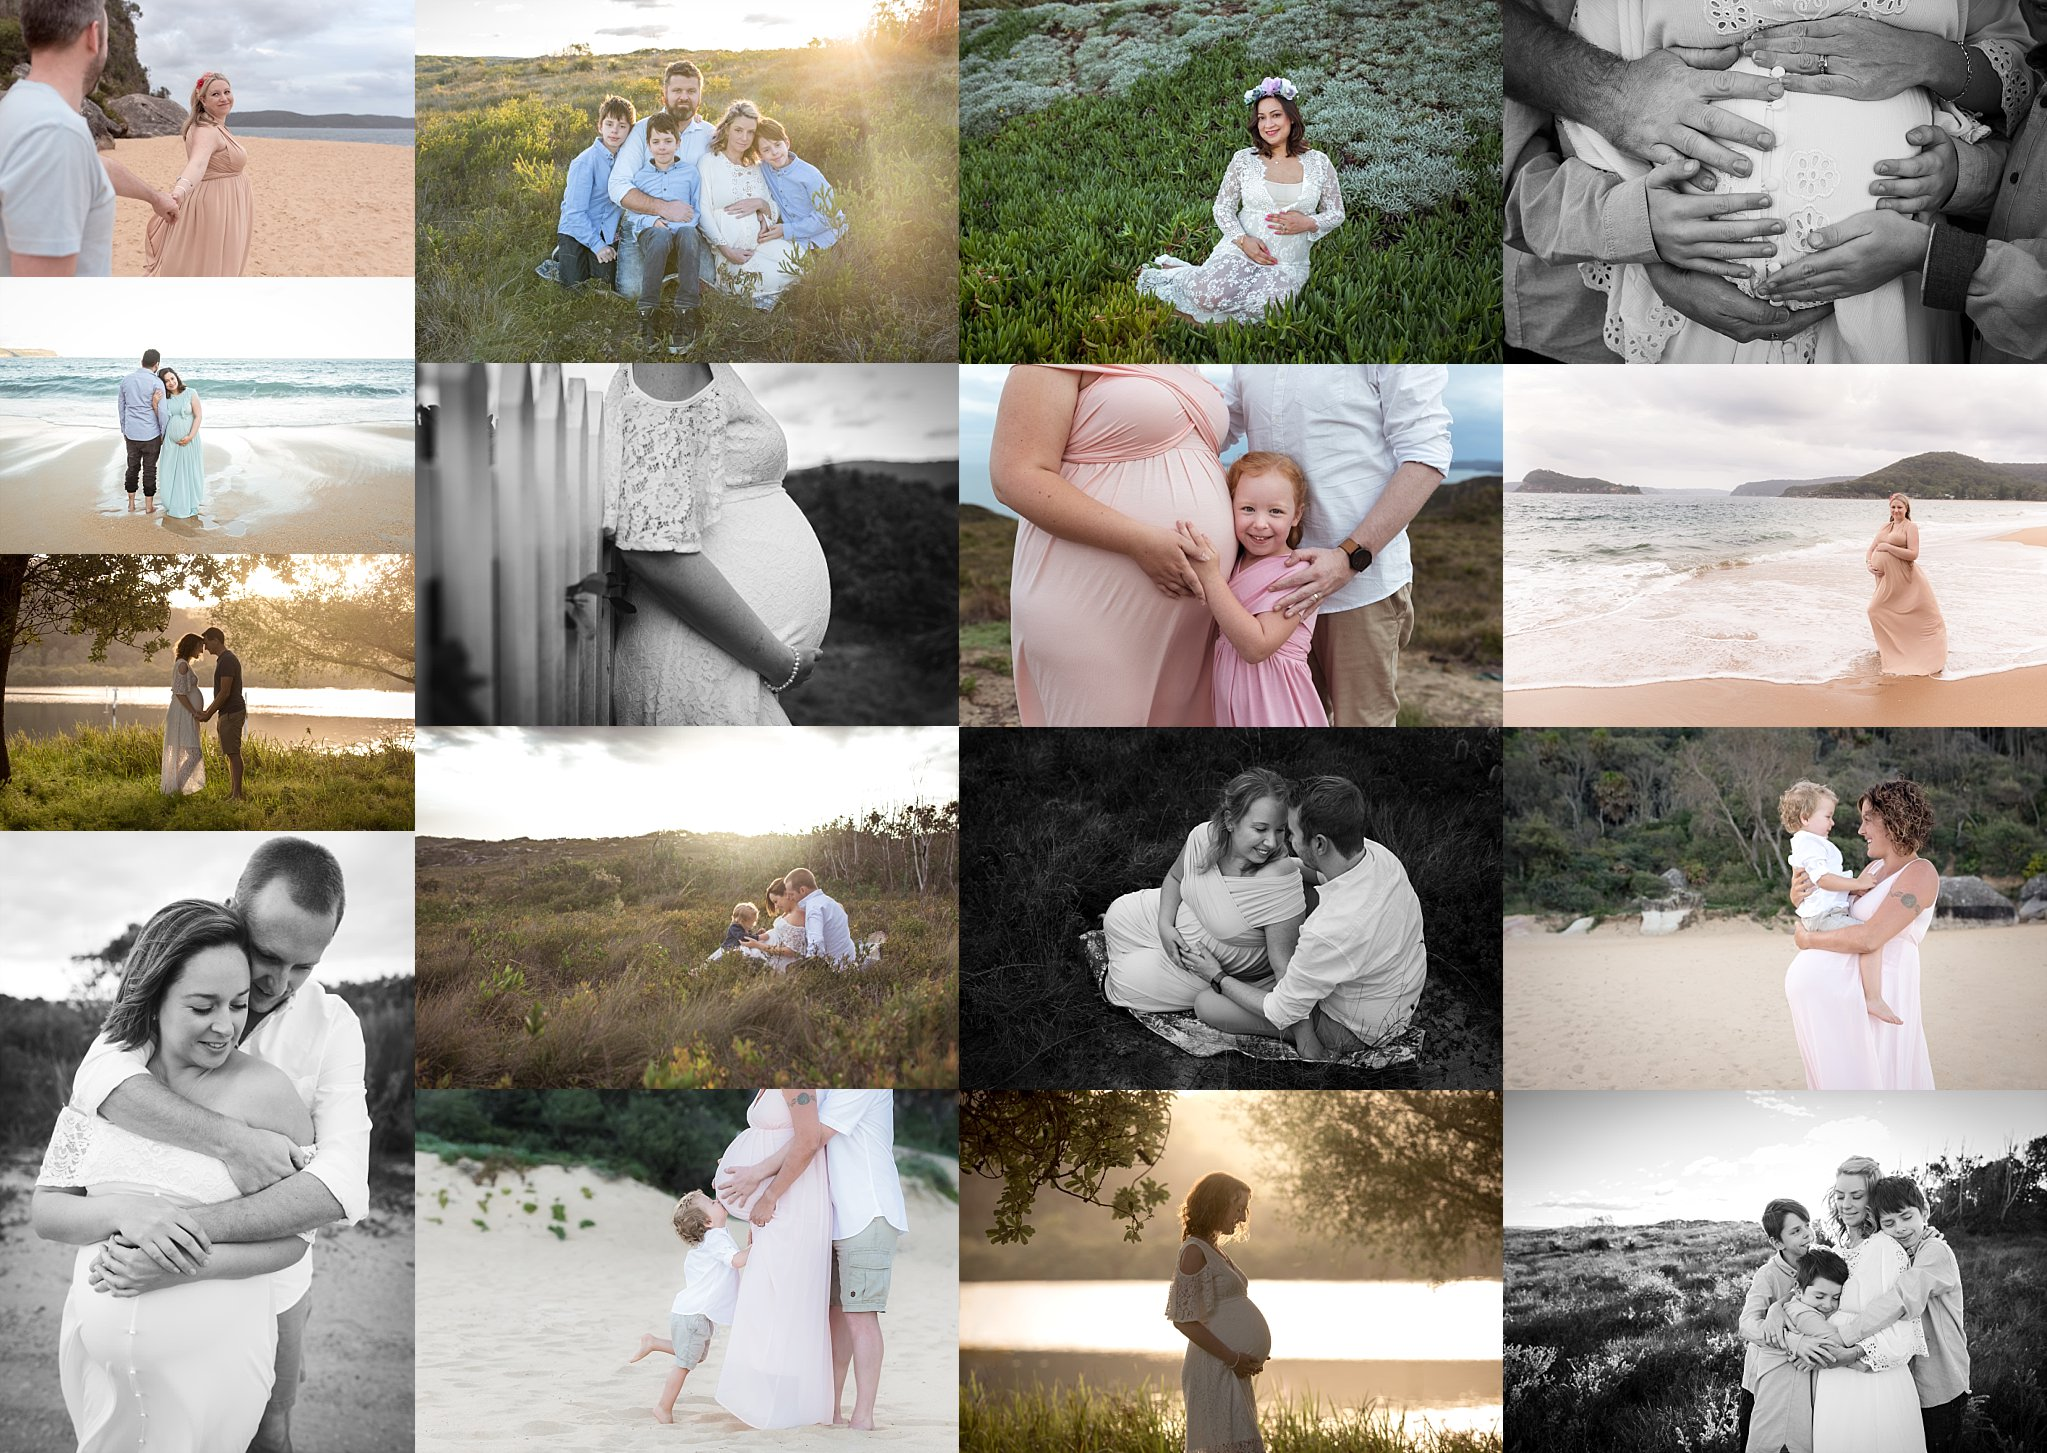 Central coast maternity photography, central coast maternity photographer, pregnancy photos central coast, natural maternity photos